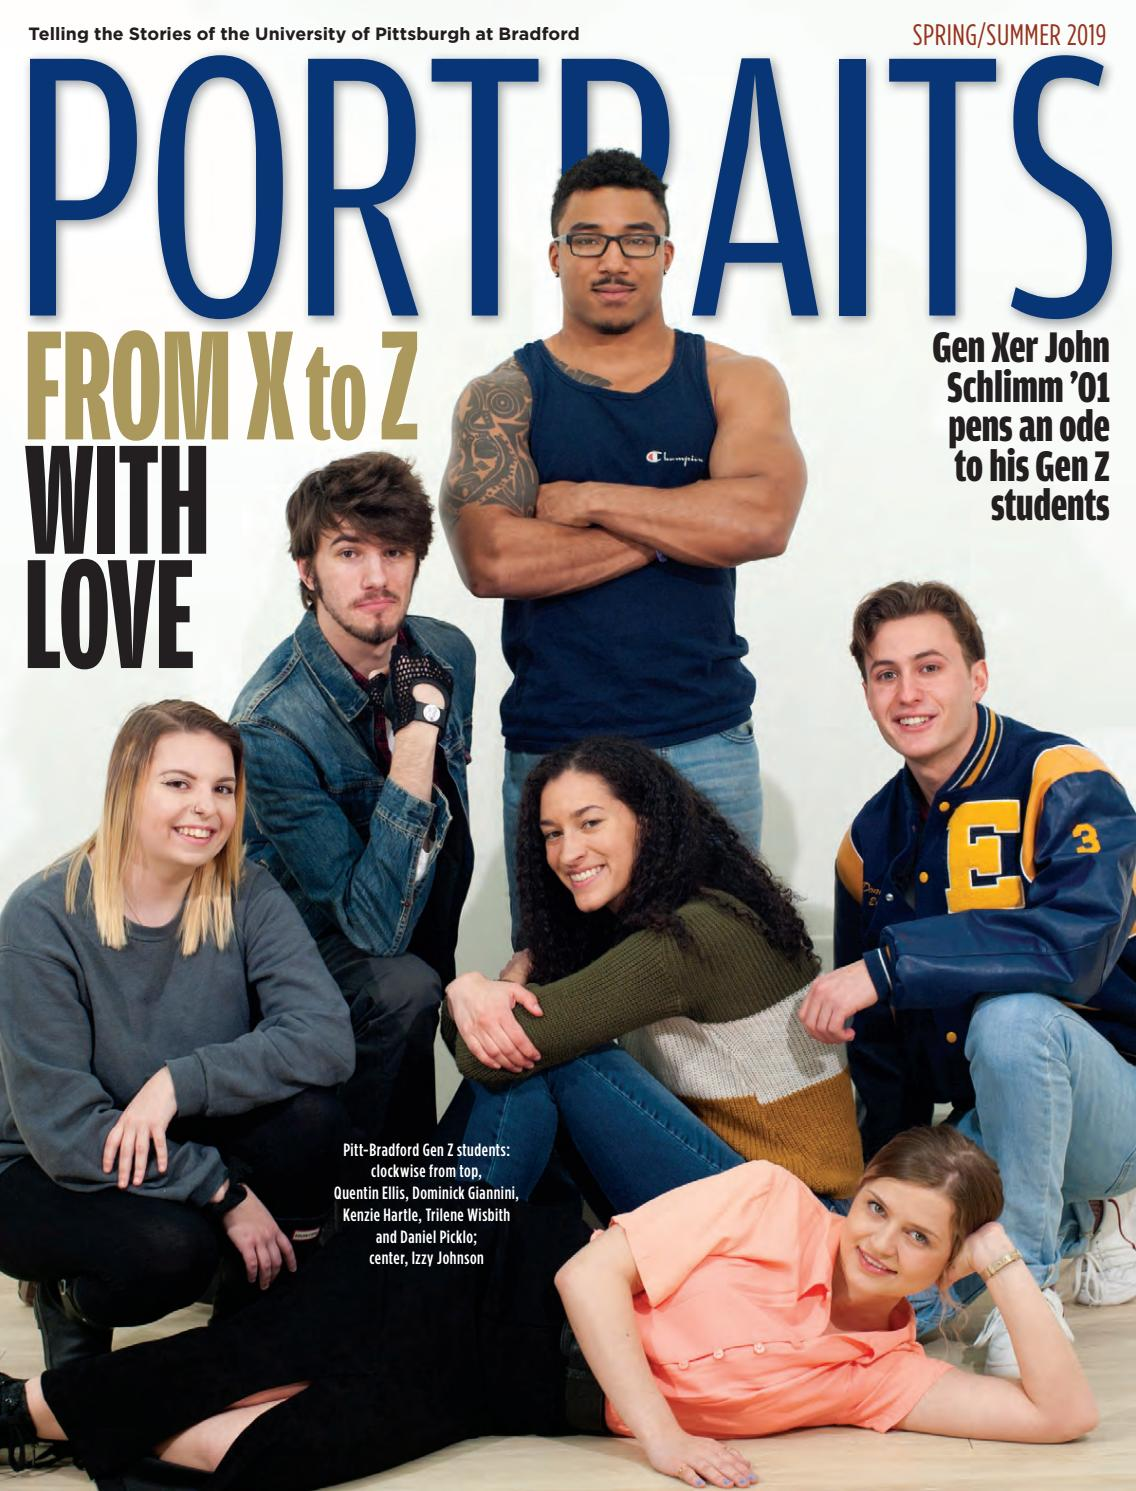 Portraits Magazine -- Spring-Summer 2019 by Portraits